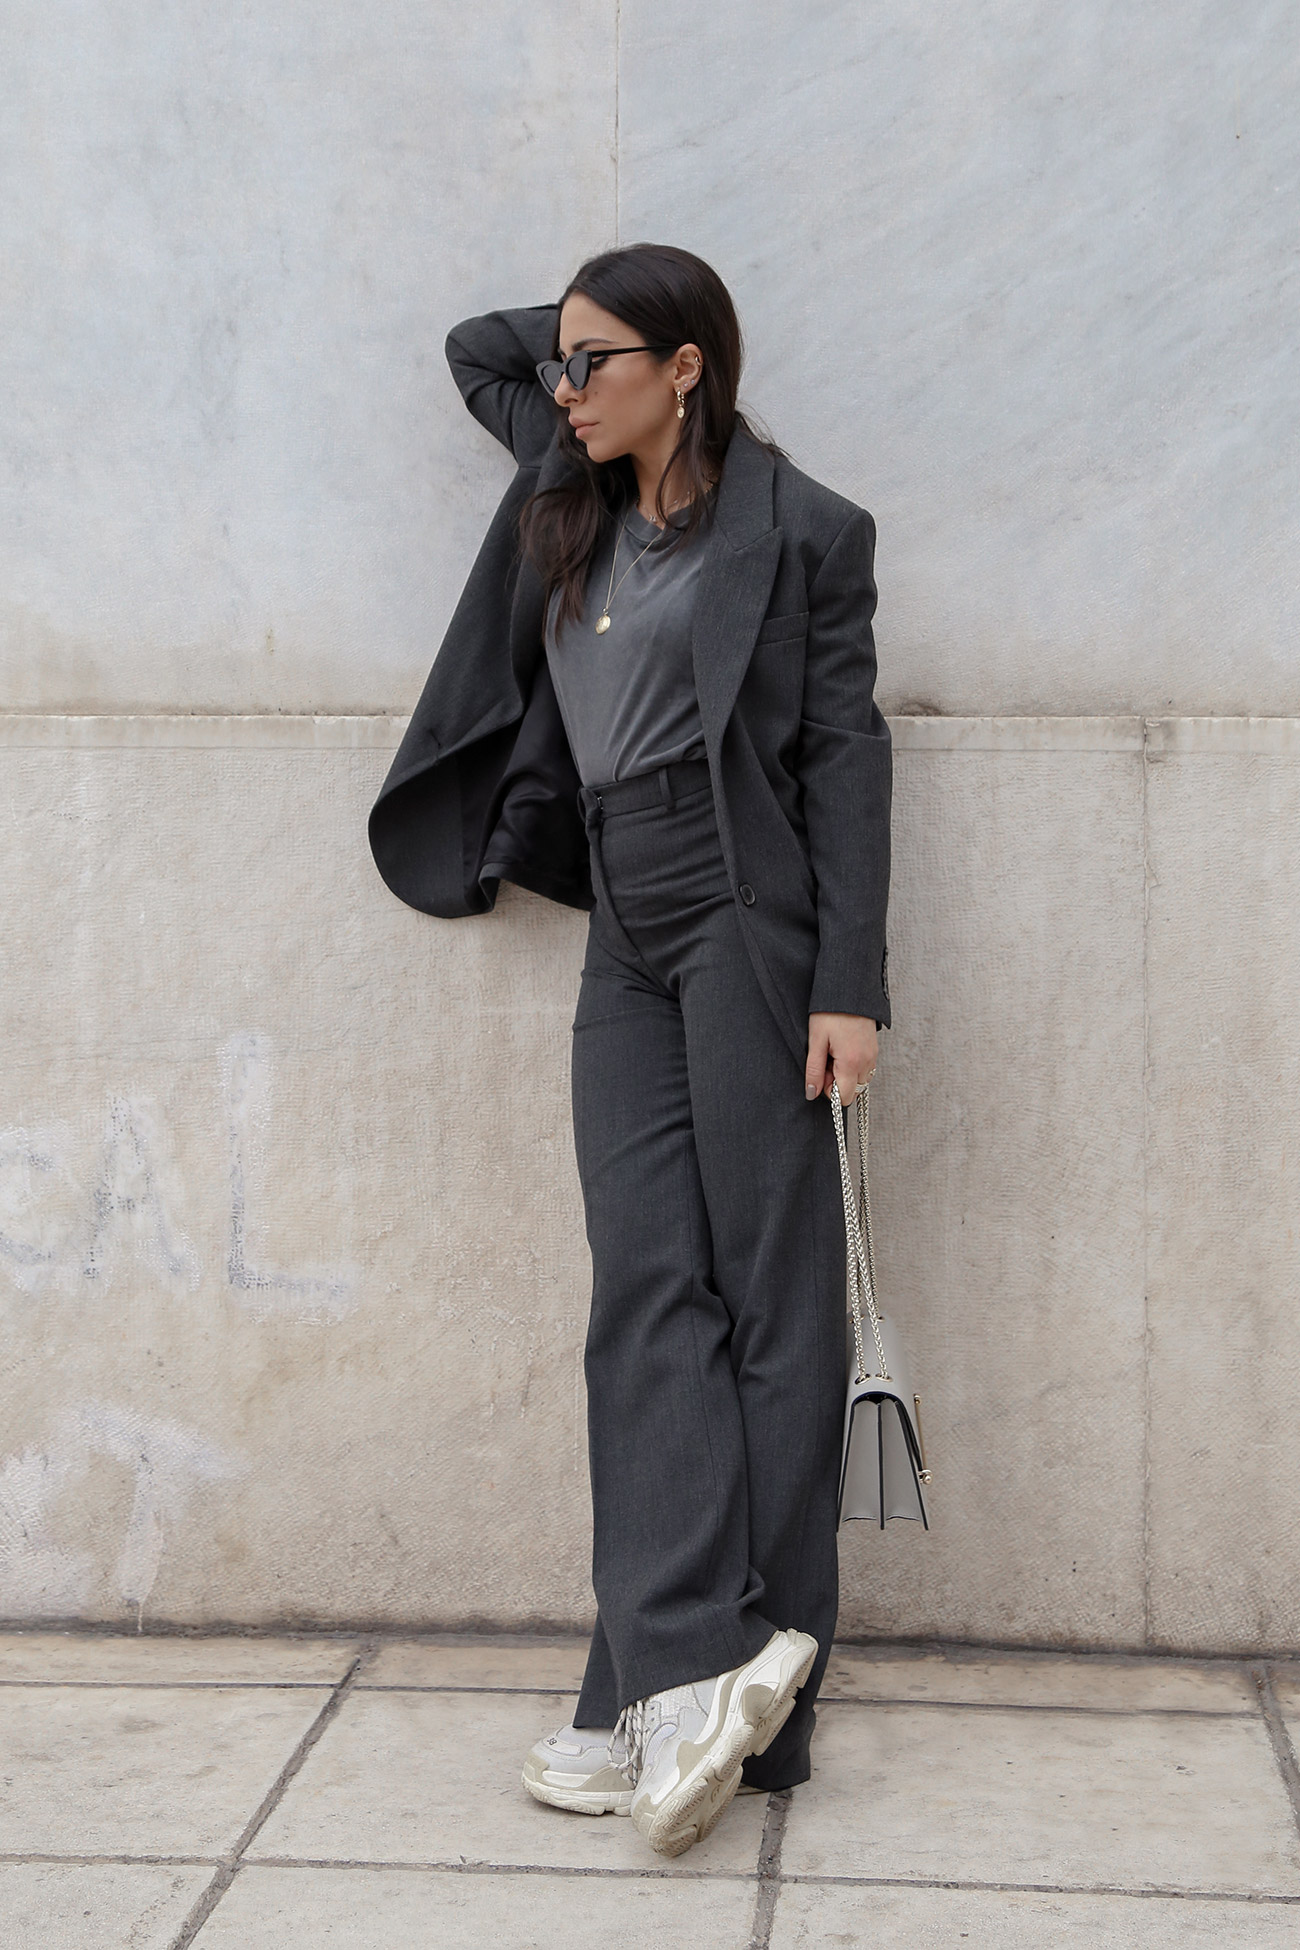 Stella Asteria wearing a grey women's suit casually with Balenciaga Triple S sneakers & Strathberry bag